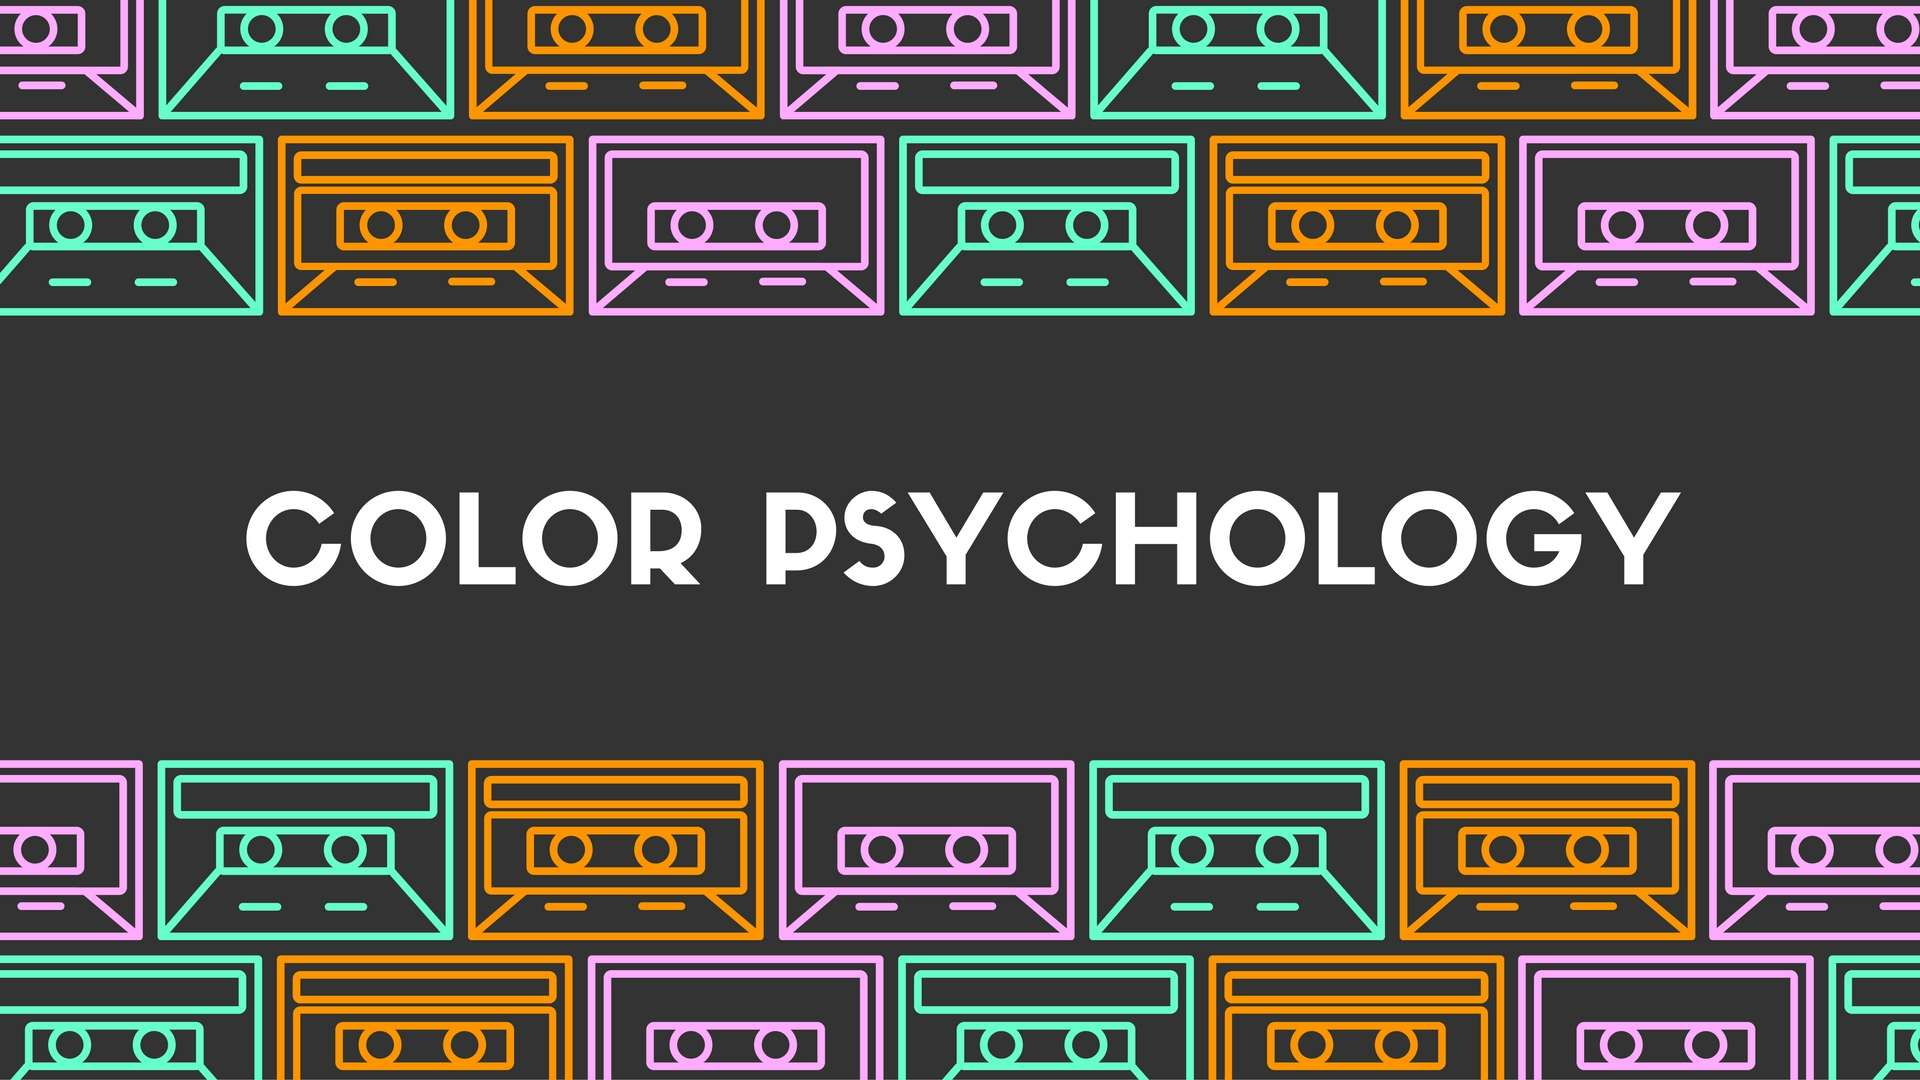 Give Your Law Firm a Digital Marketing Edge Through Color Psychology